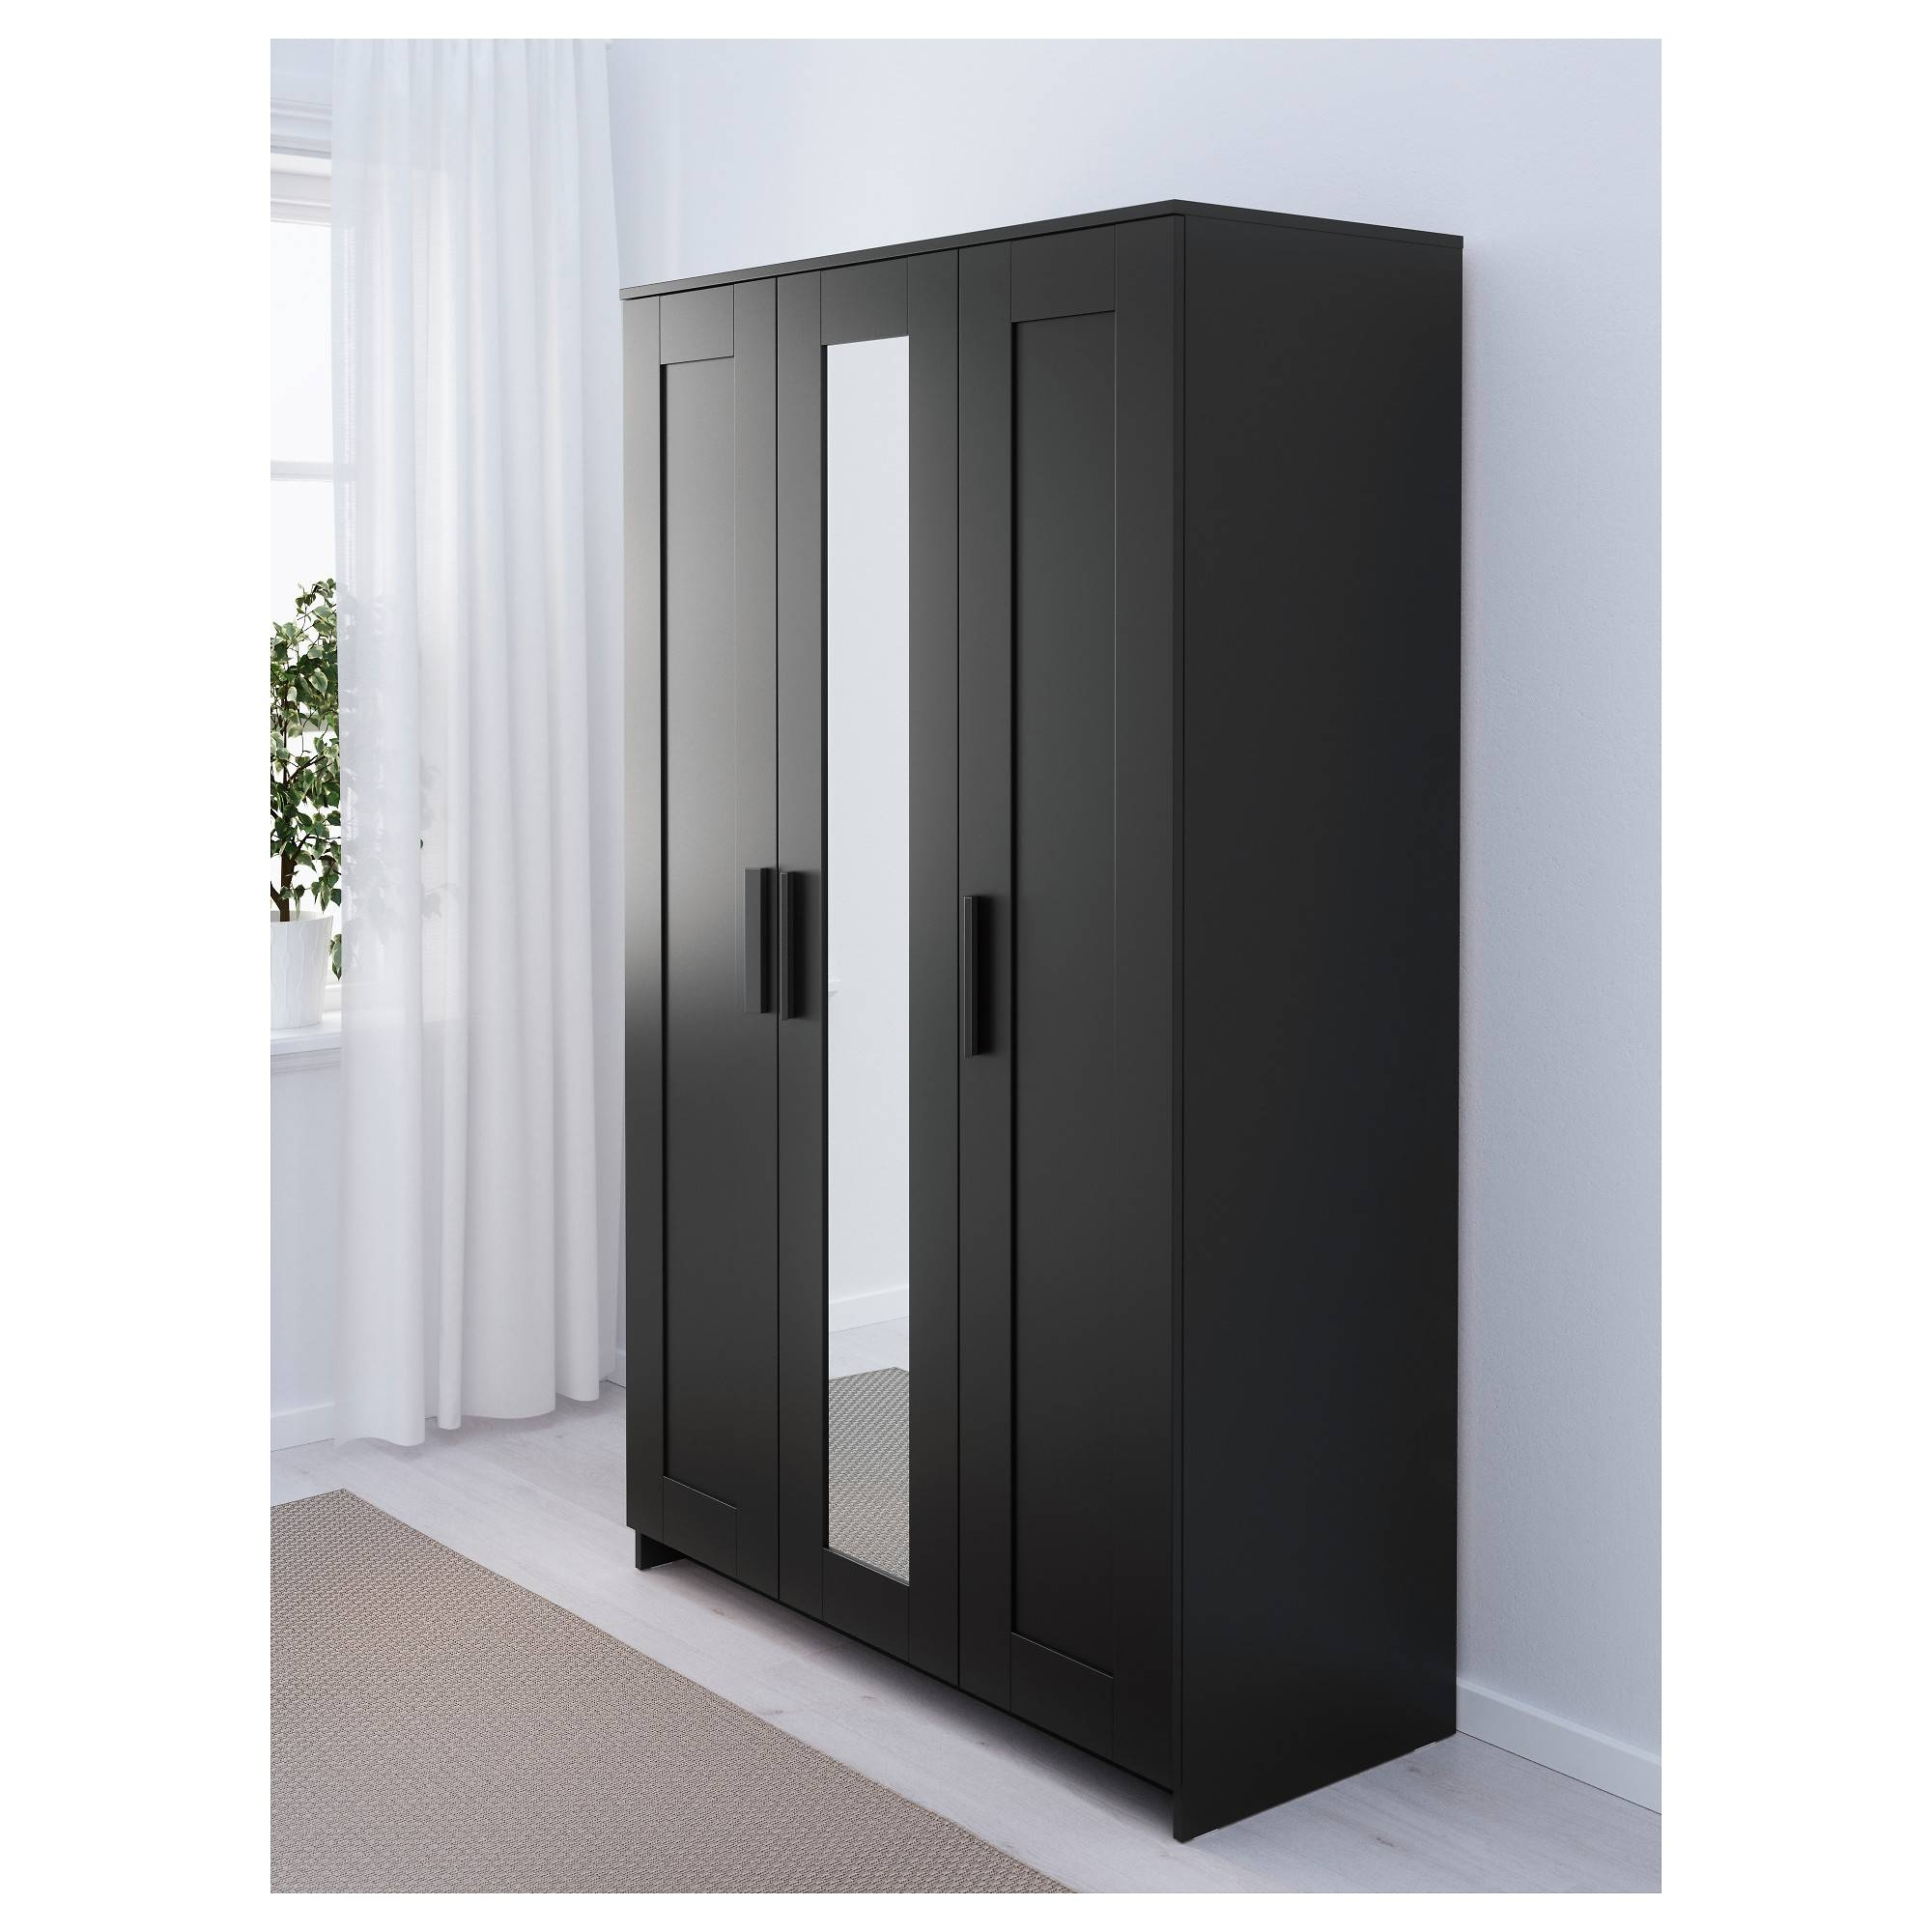 Brimnes Wardrobe With 3 Doors - White - Ikea with regard to 3 Doors Wardrobes With Mirror (Image 4 of 15)